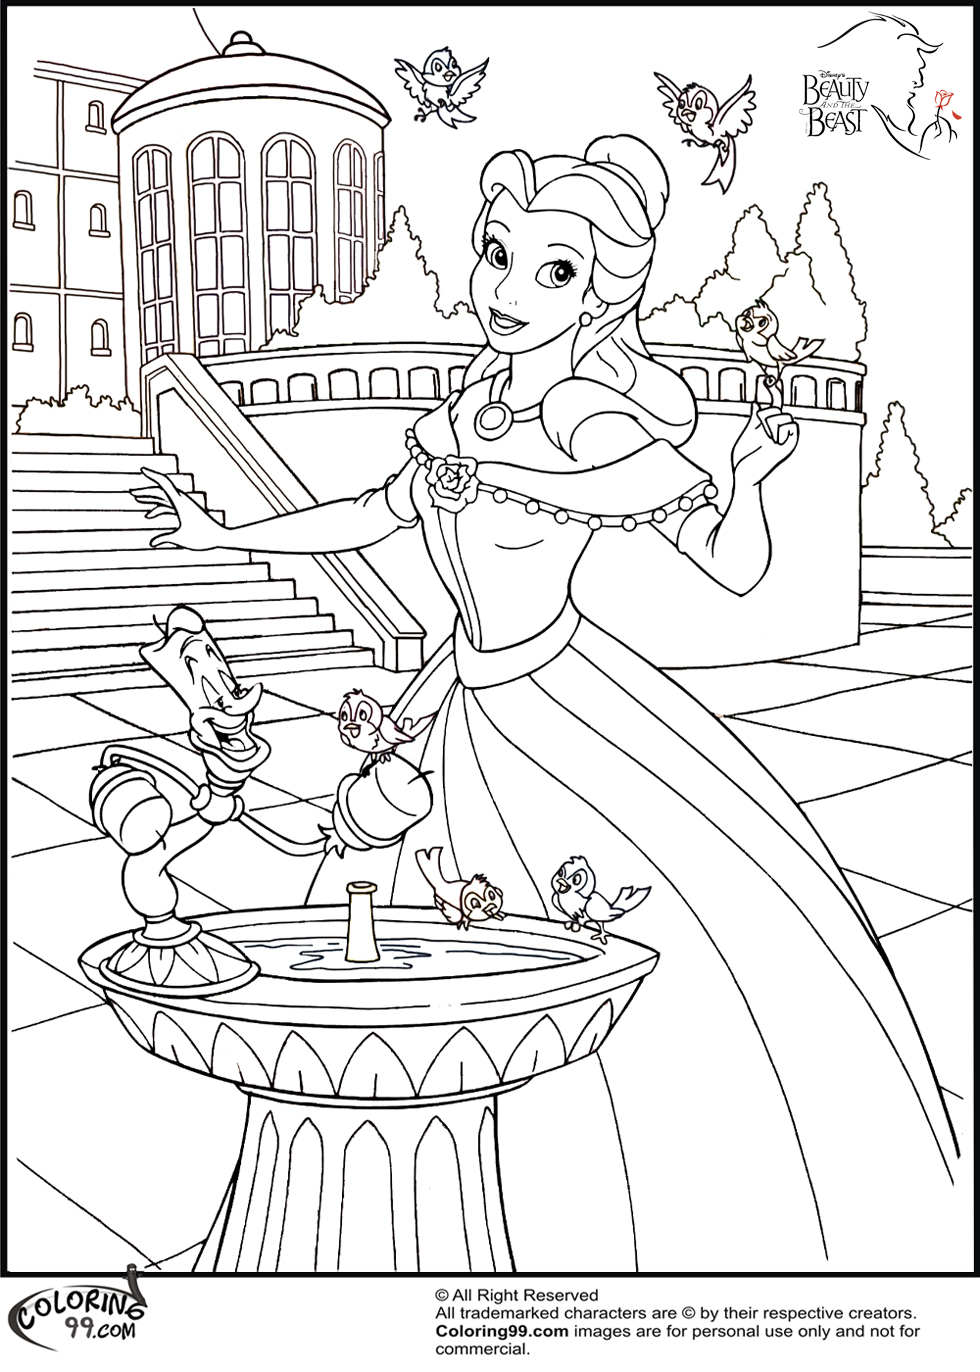 coloring pages of disneys belle - photo#21